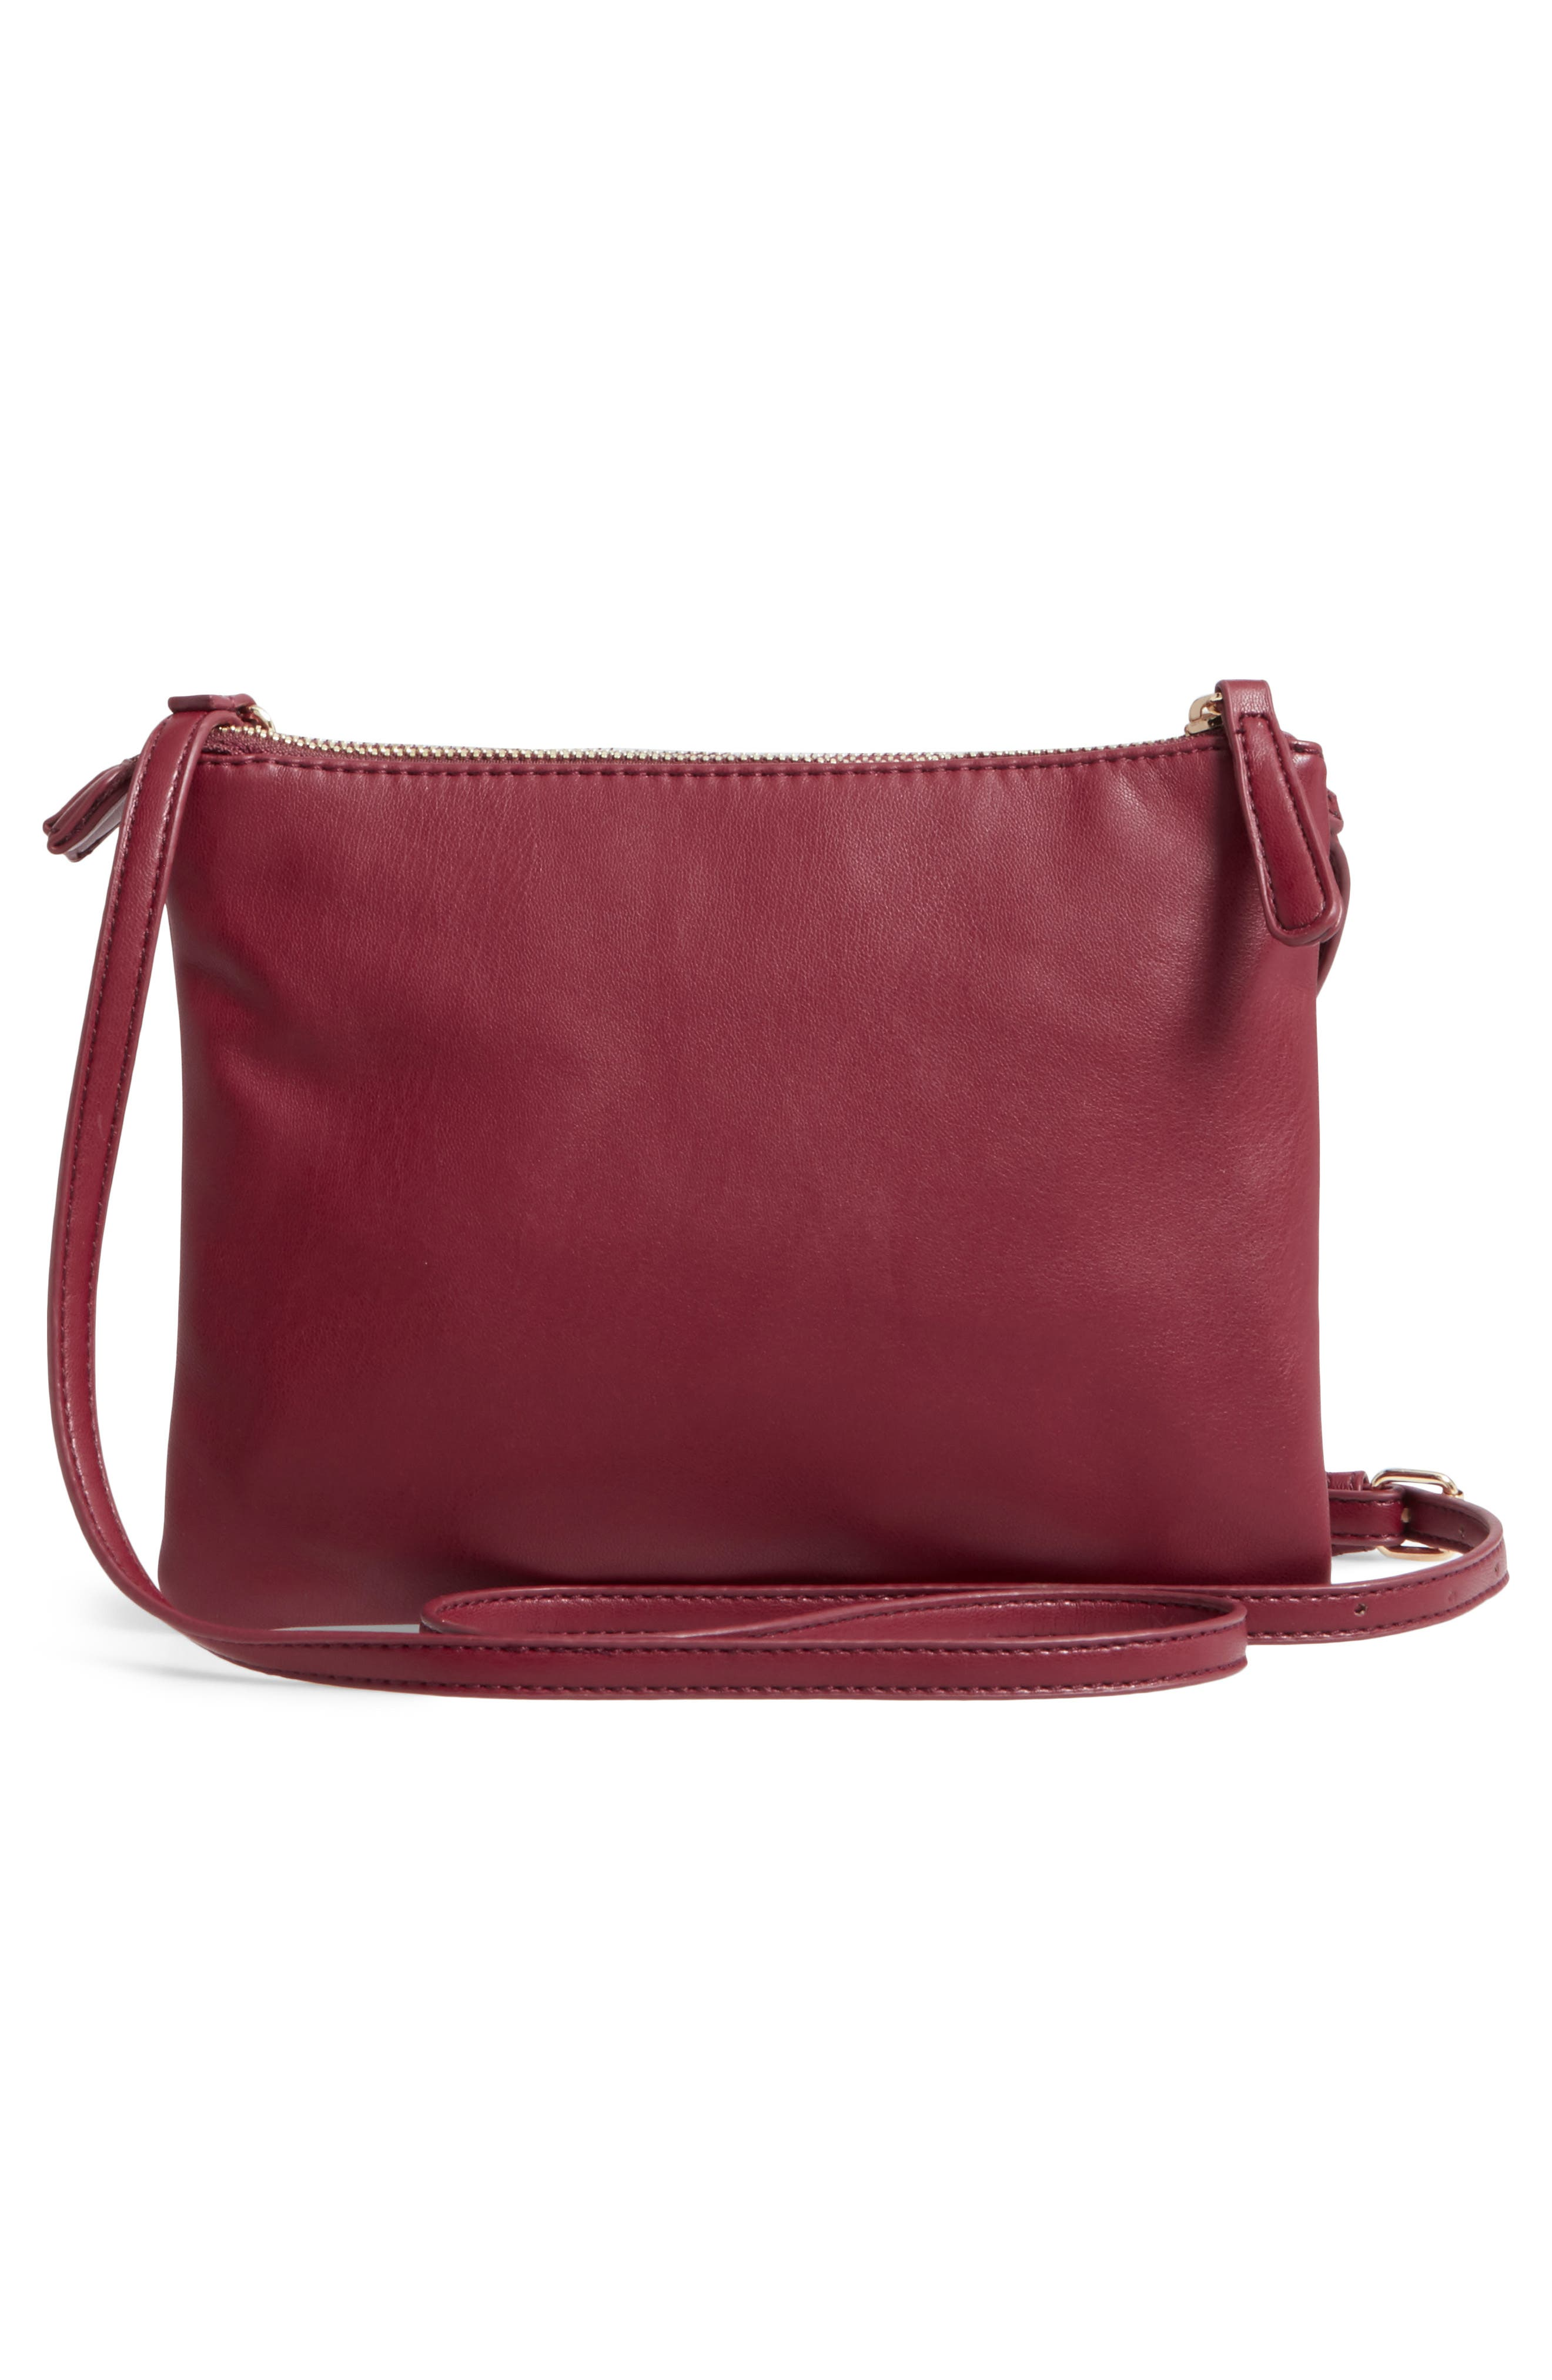 Madden Faux Leather Pouch Crossbody Bag,                             Alternate thumbnail 9, color,